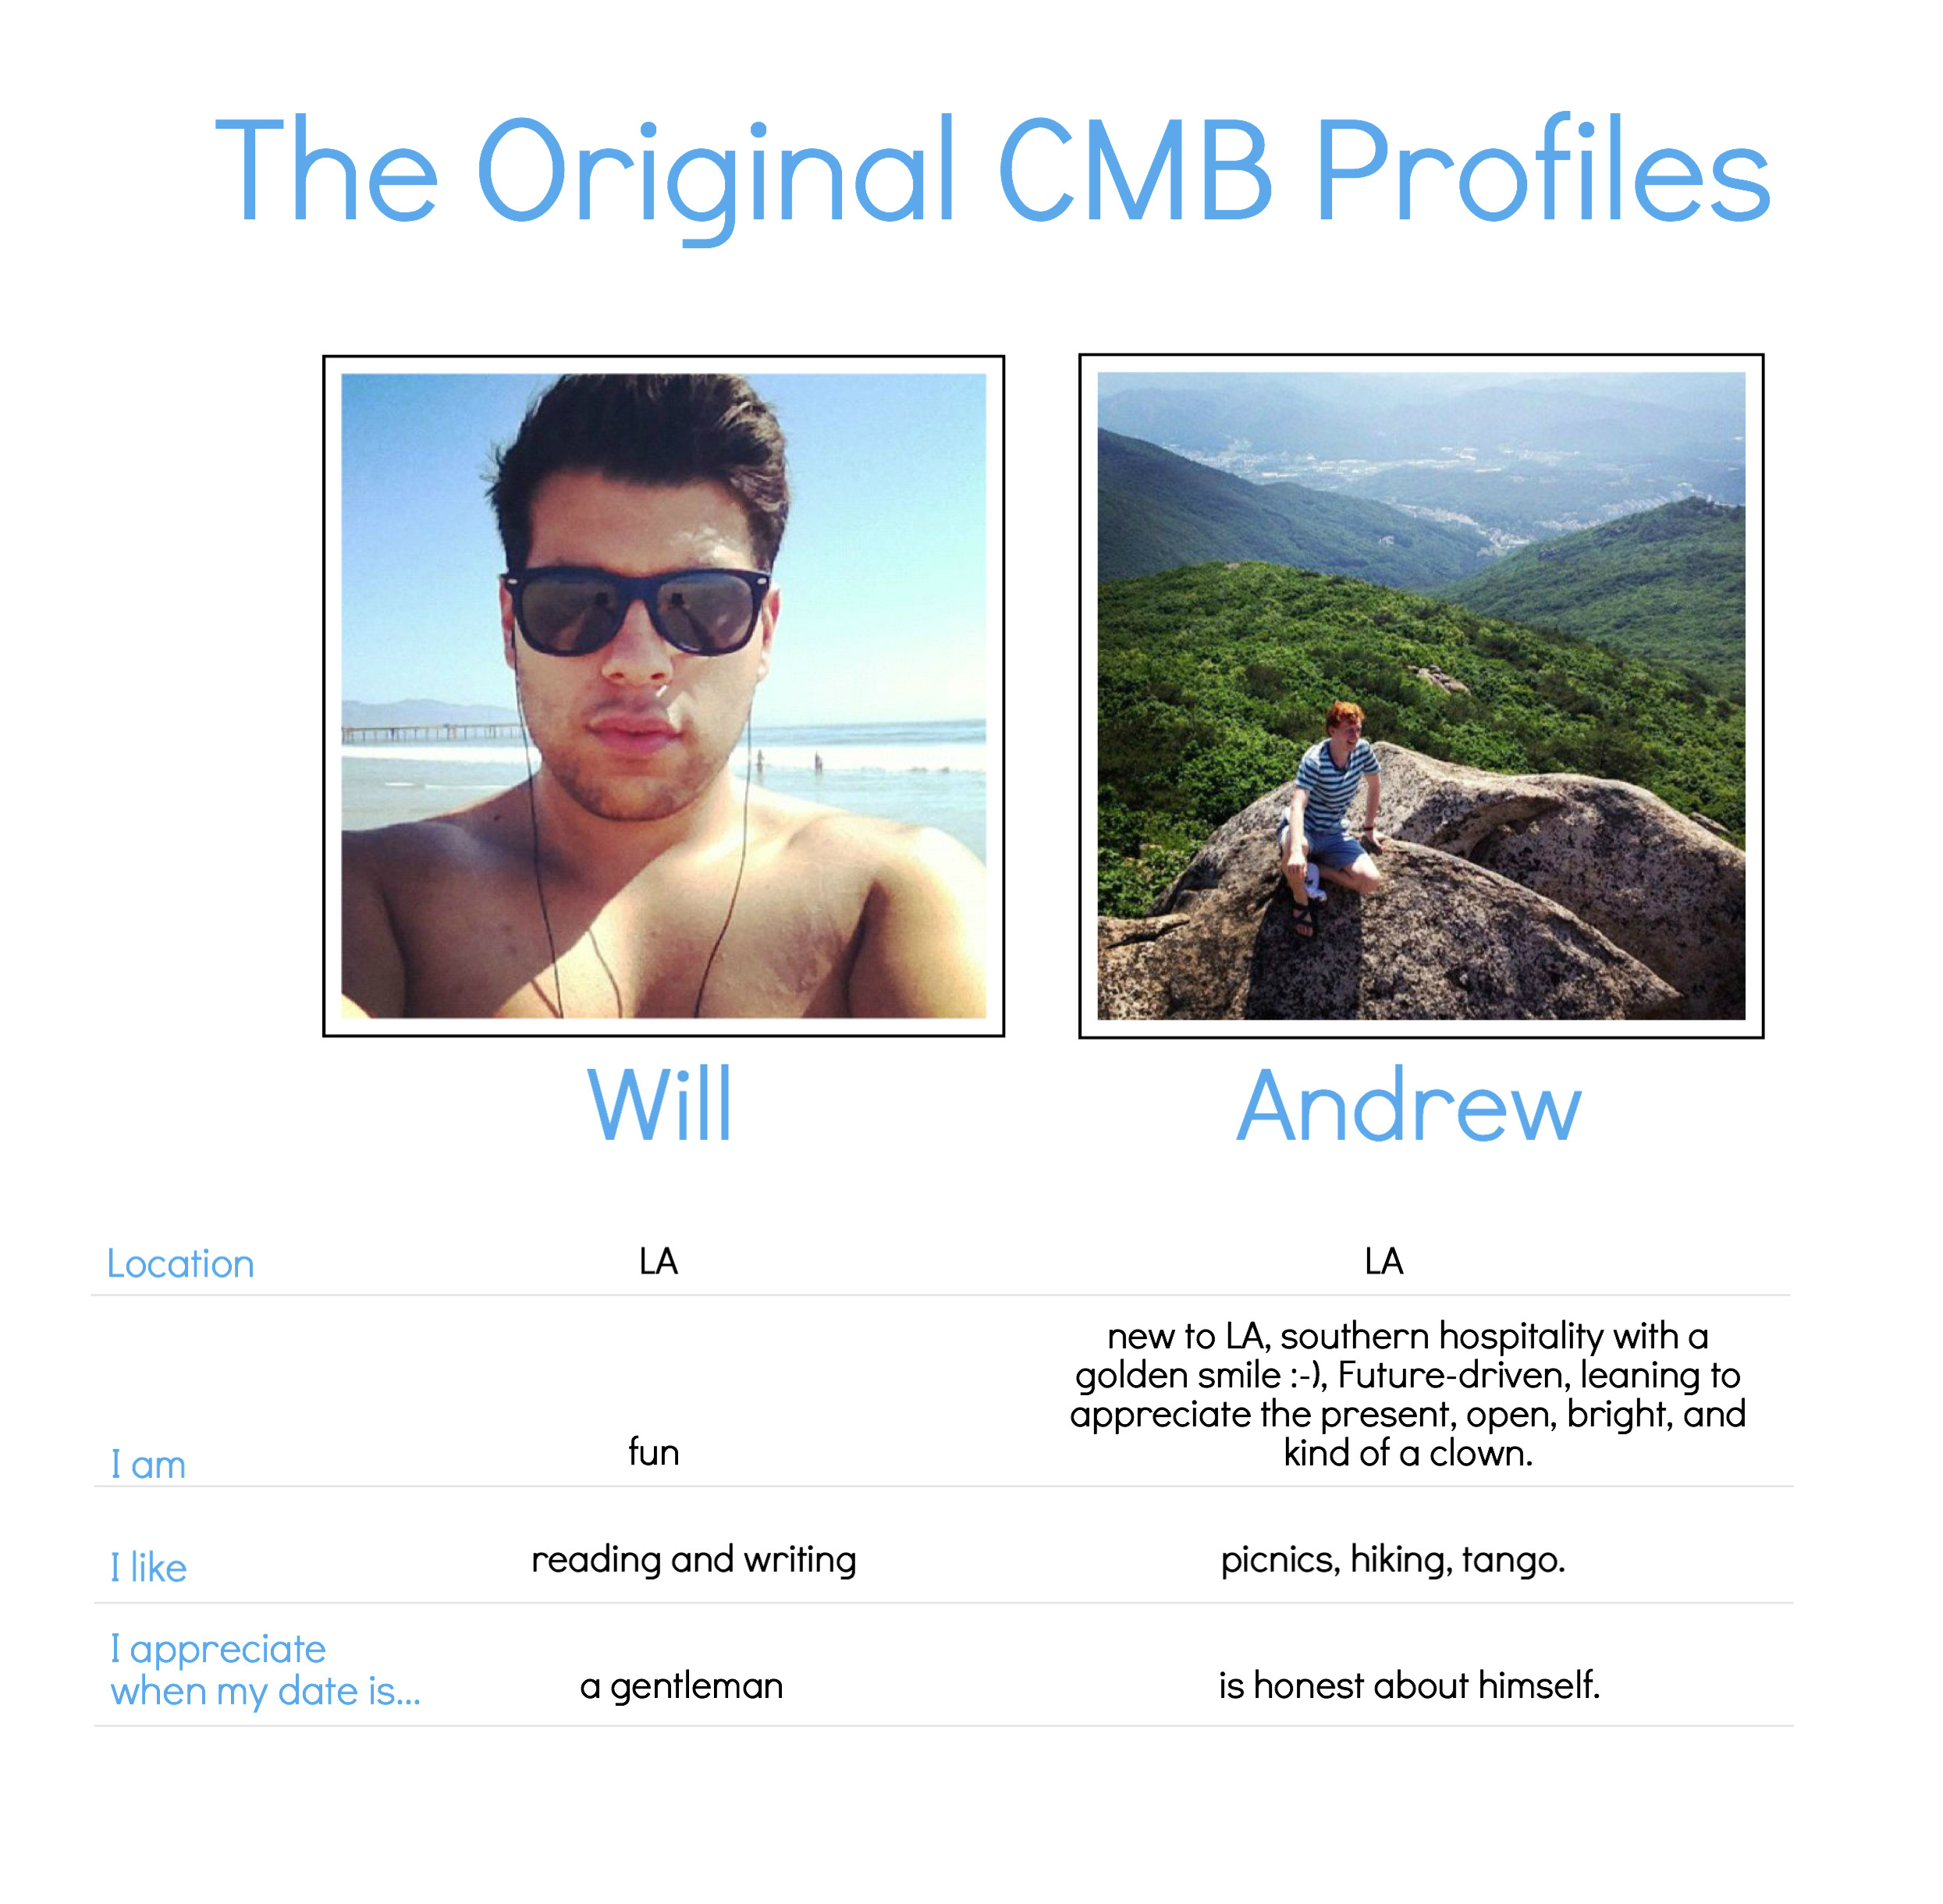 Will and Andrew's Profiles